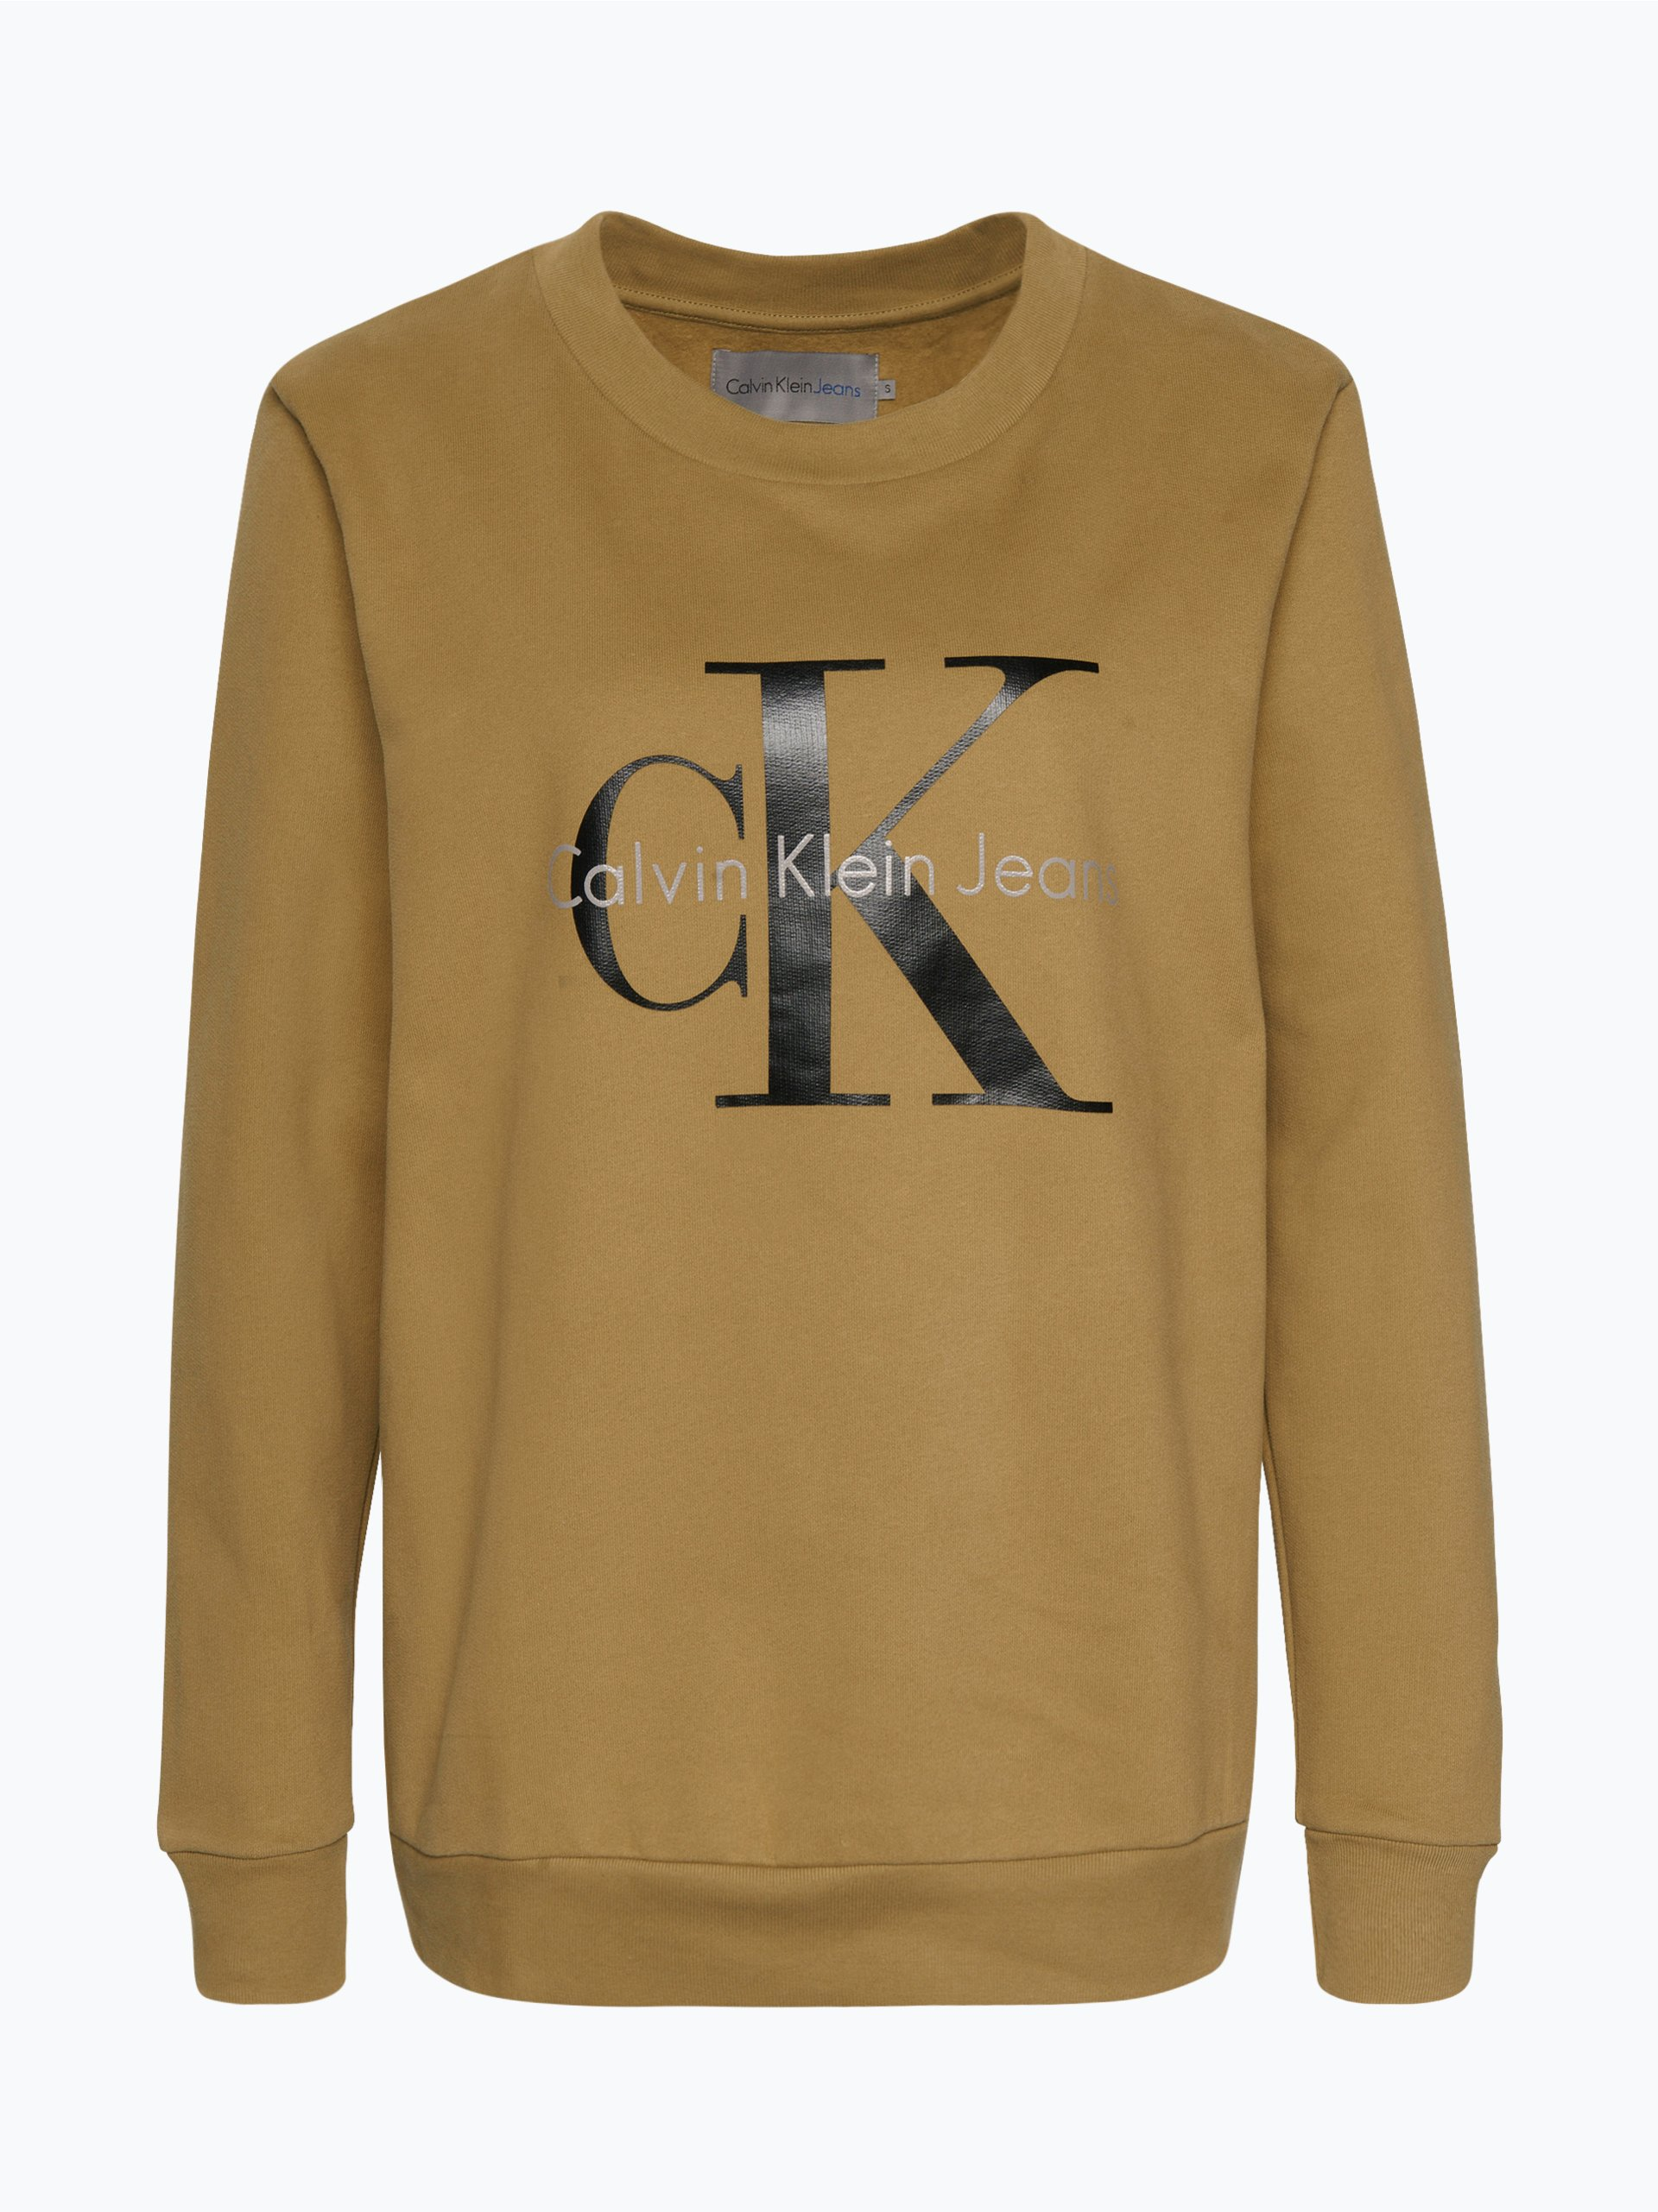 calvin klein jeans damen sweatshirt oliv uni online kaufen. Black Bedroom Furniture Sets. Home Design Ideas